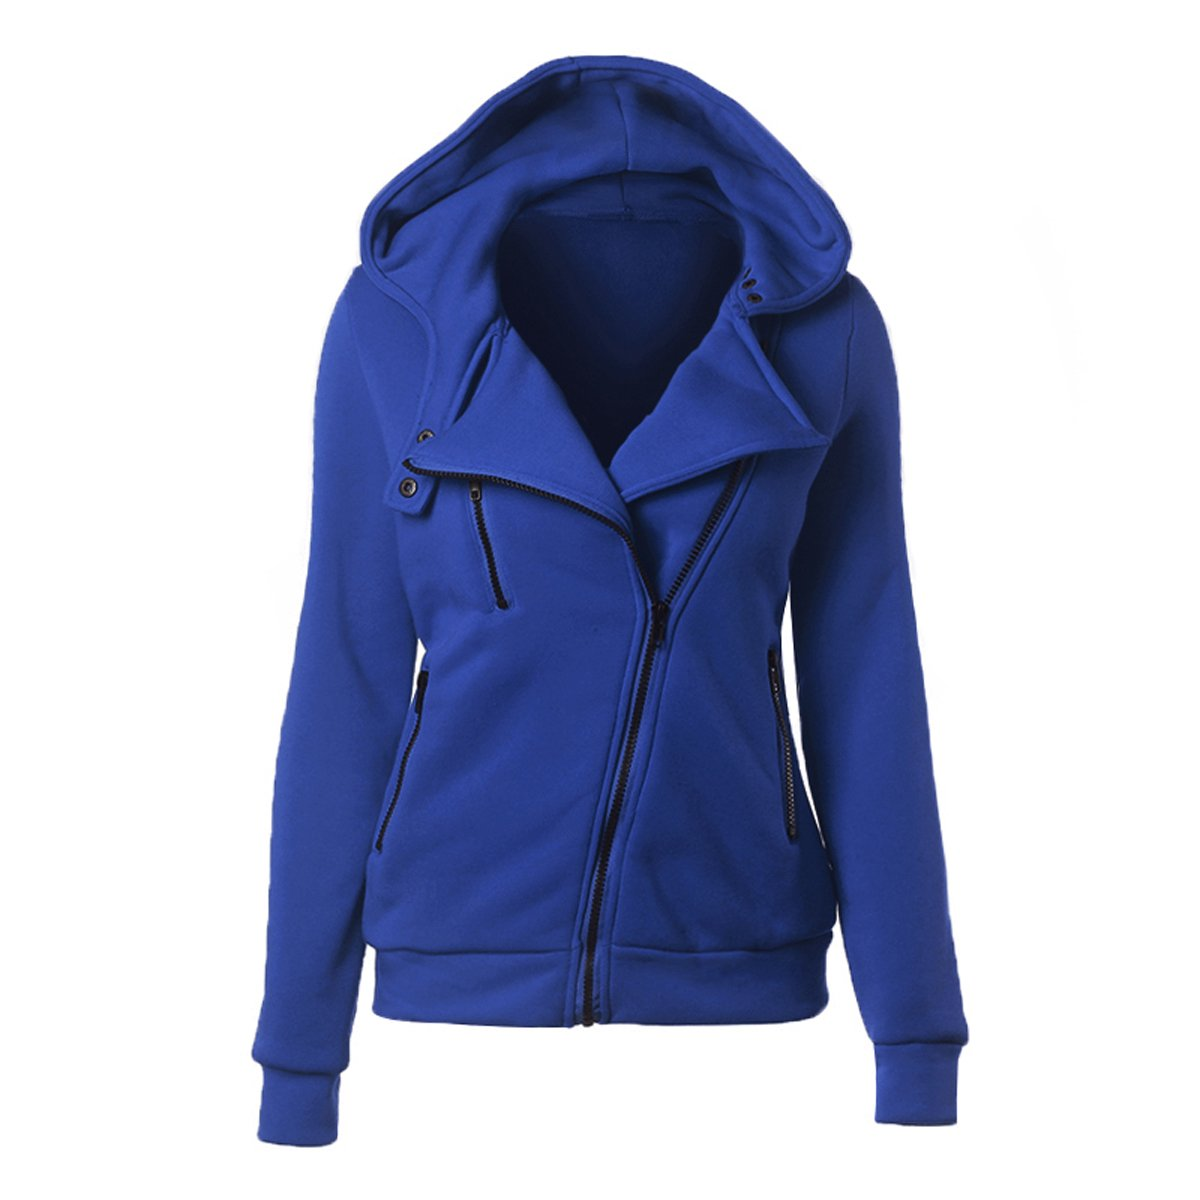 YunPeng Women's Oblique Zipper Hooded Jacket Solid Color Sweatshirt Coat by